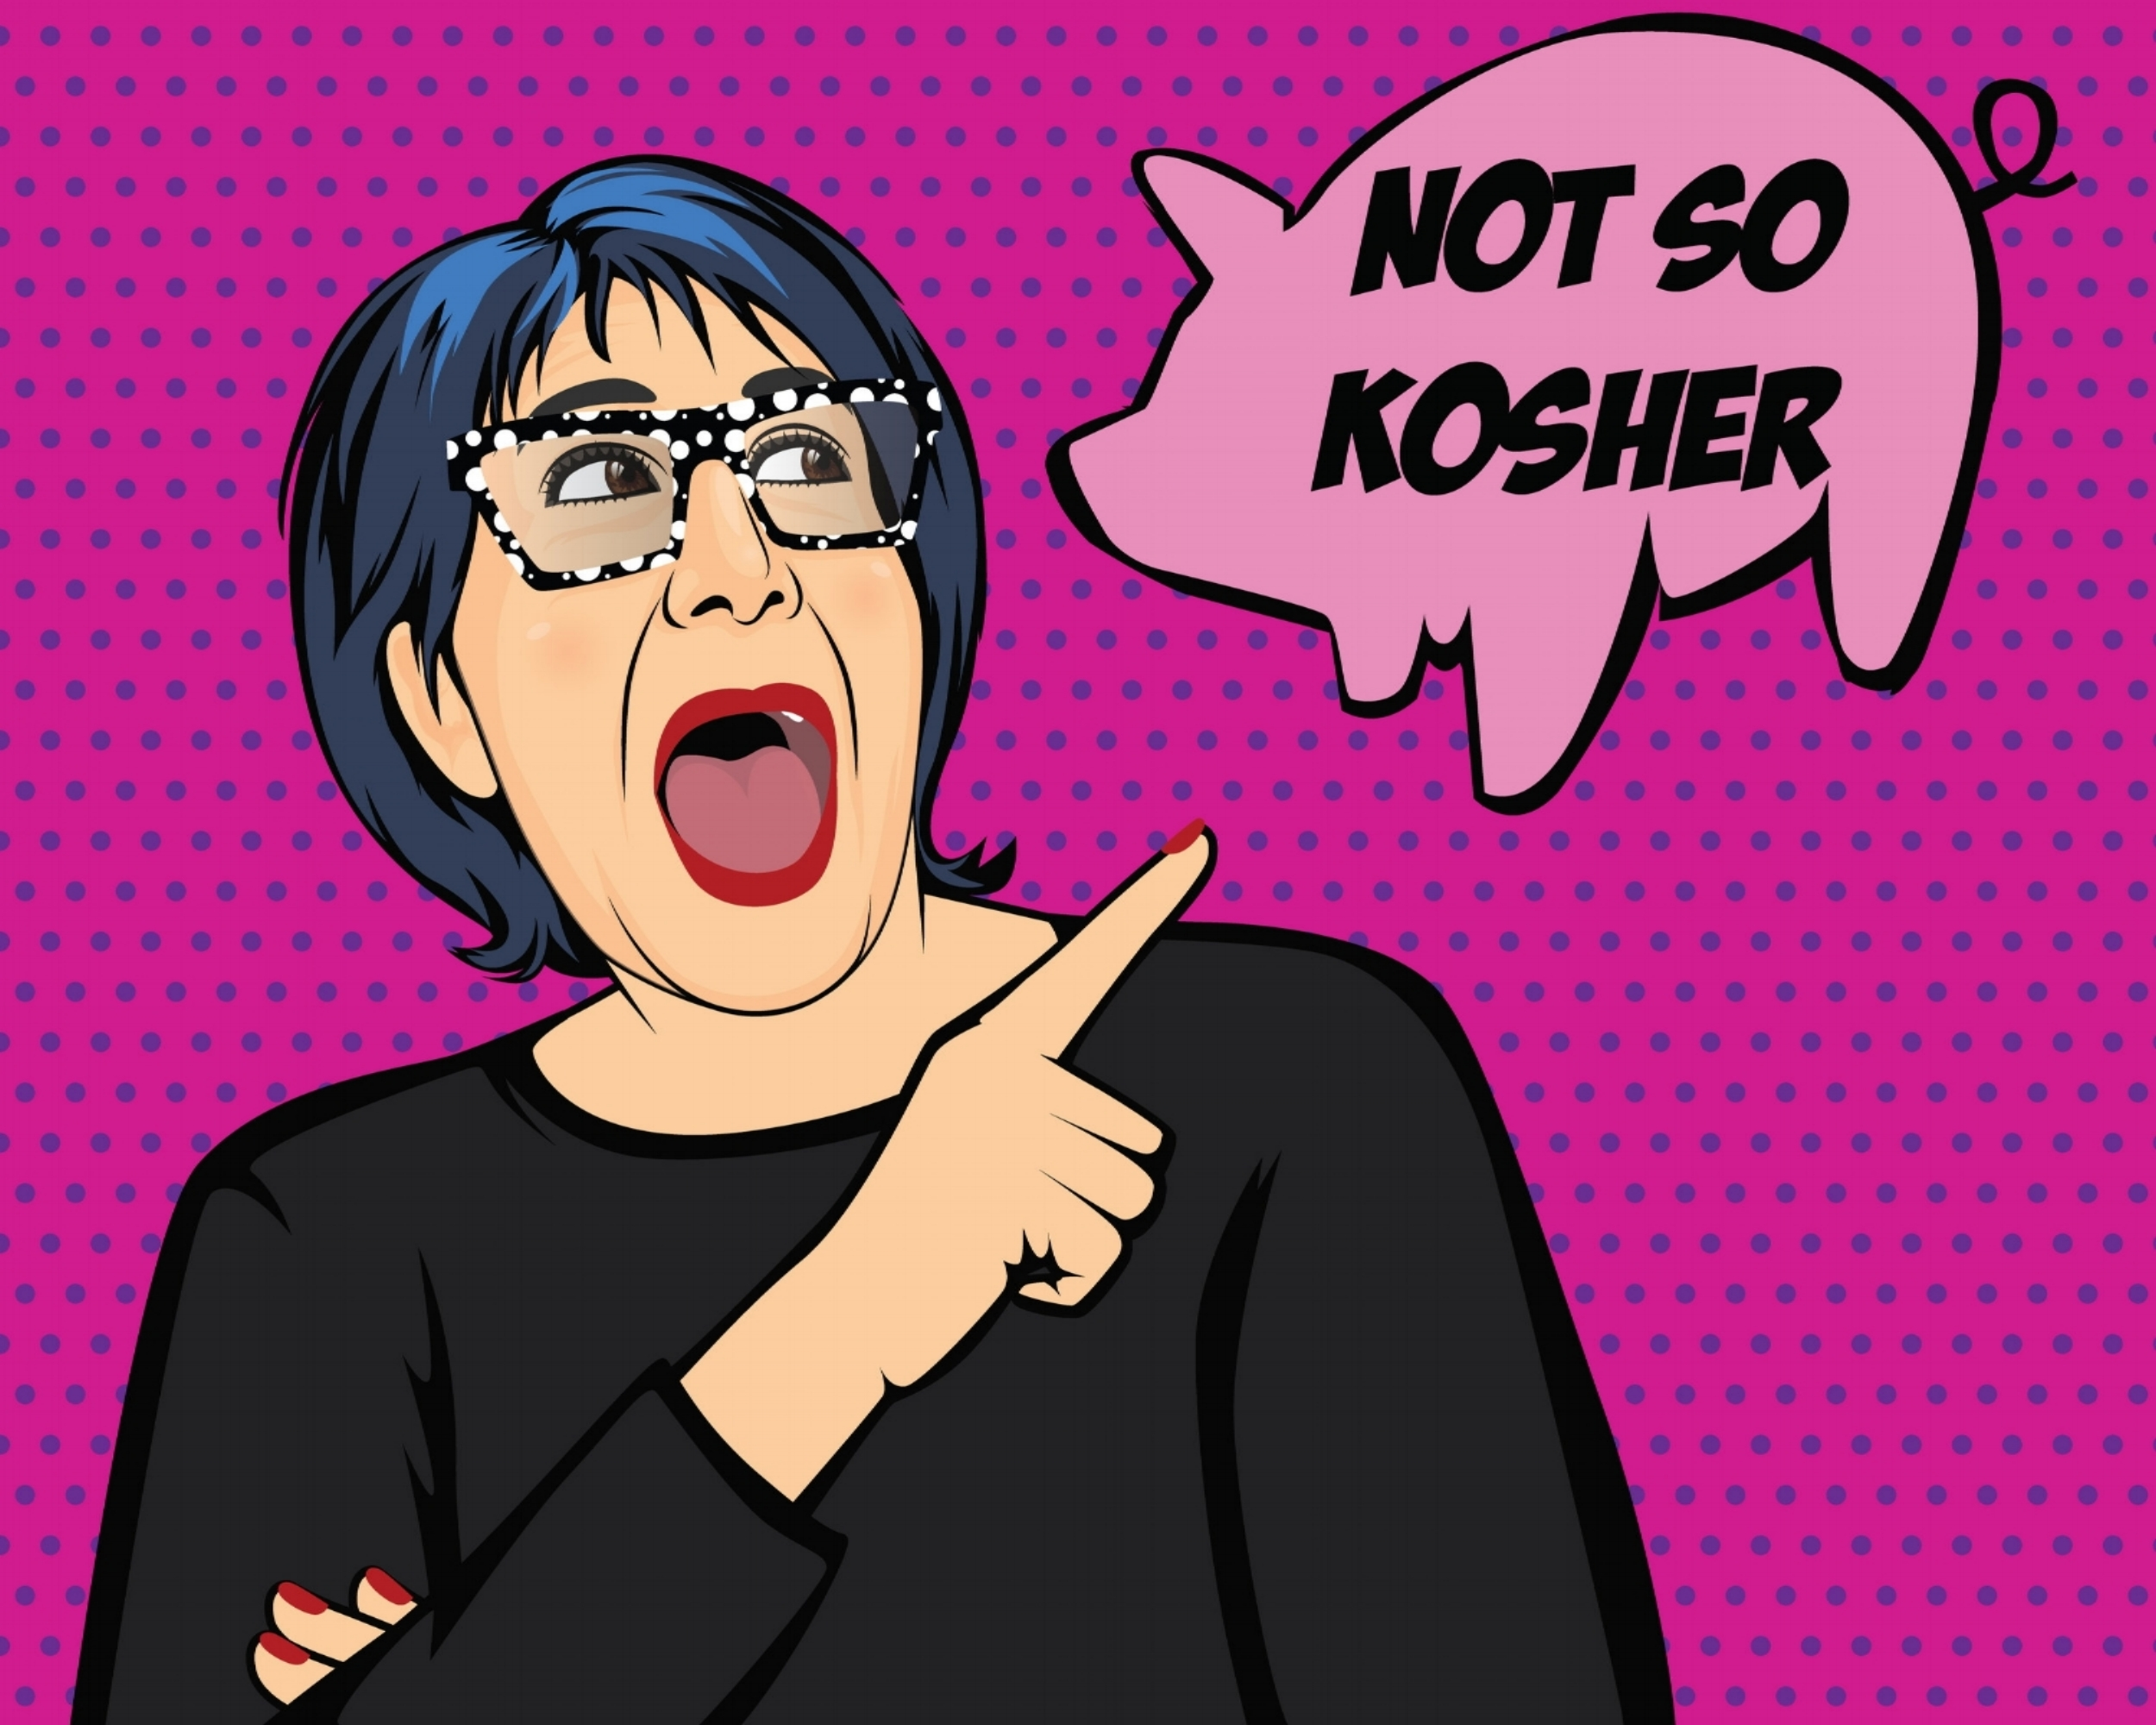 not so kosher